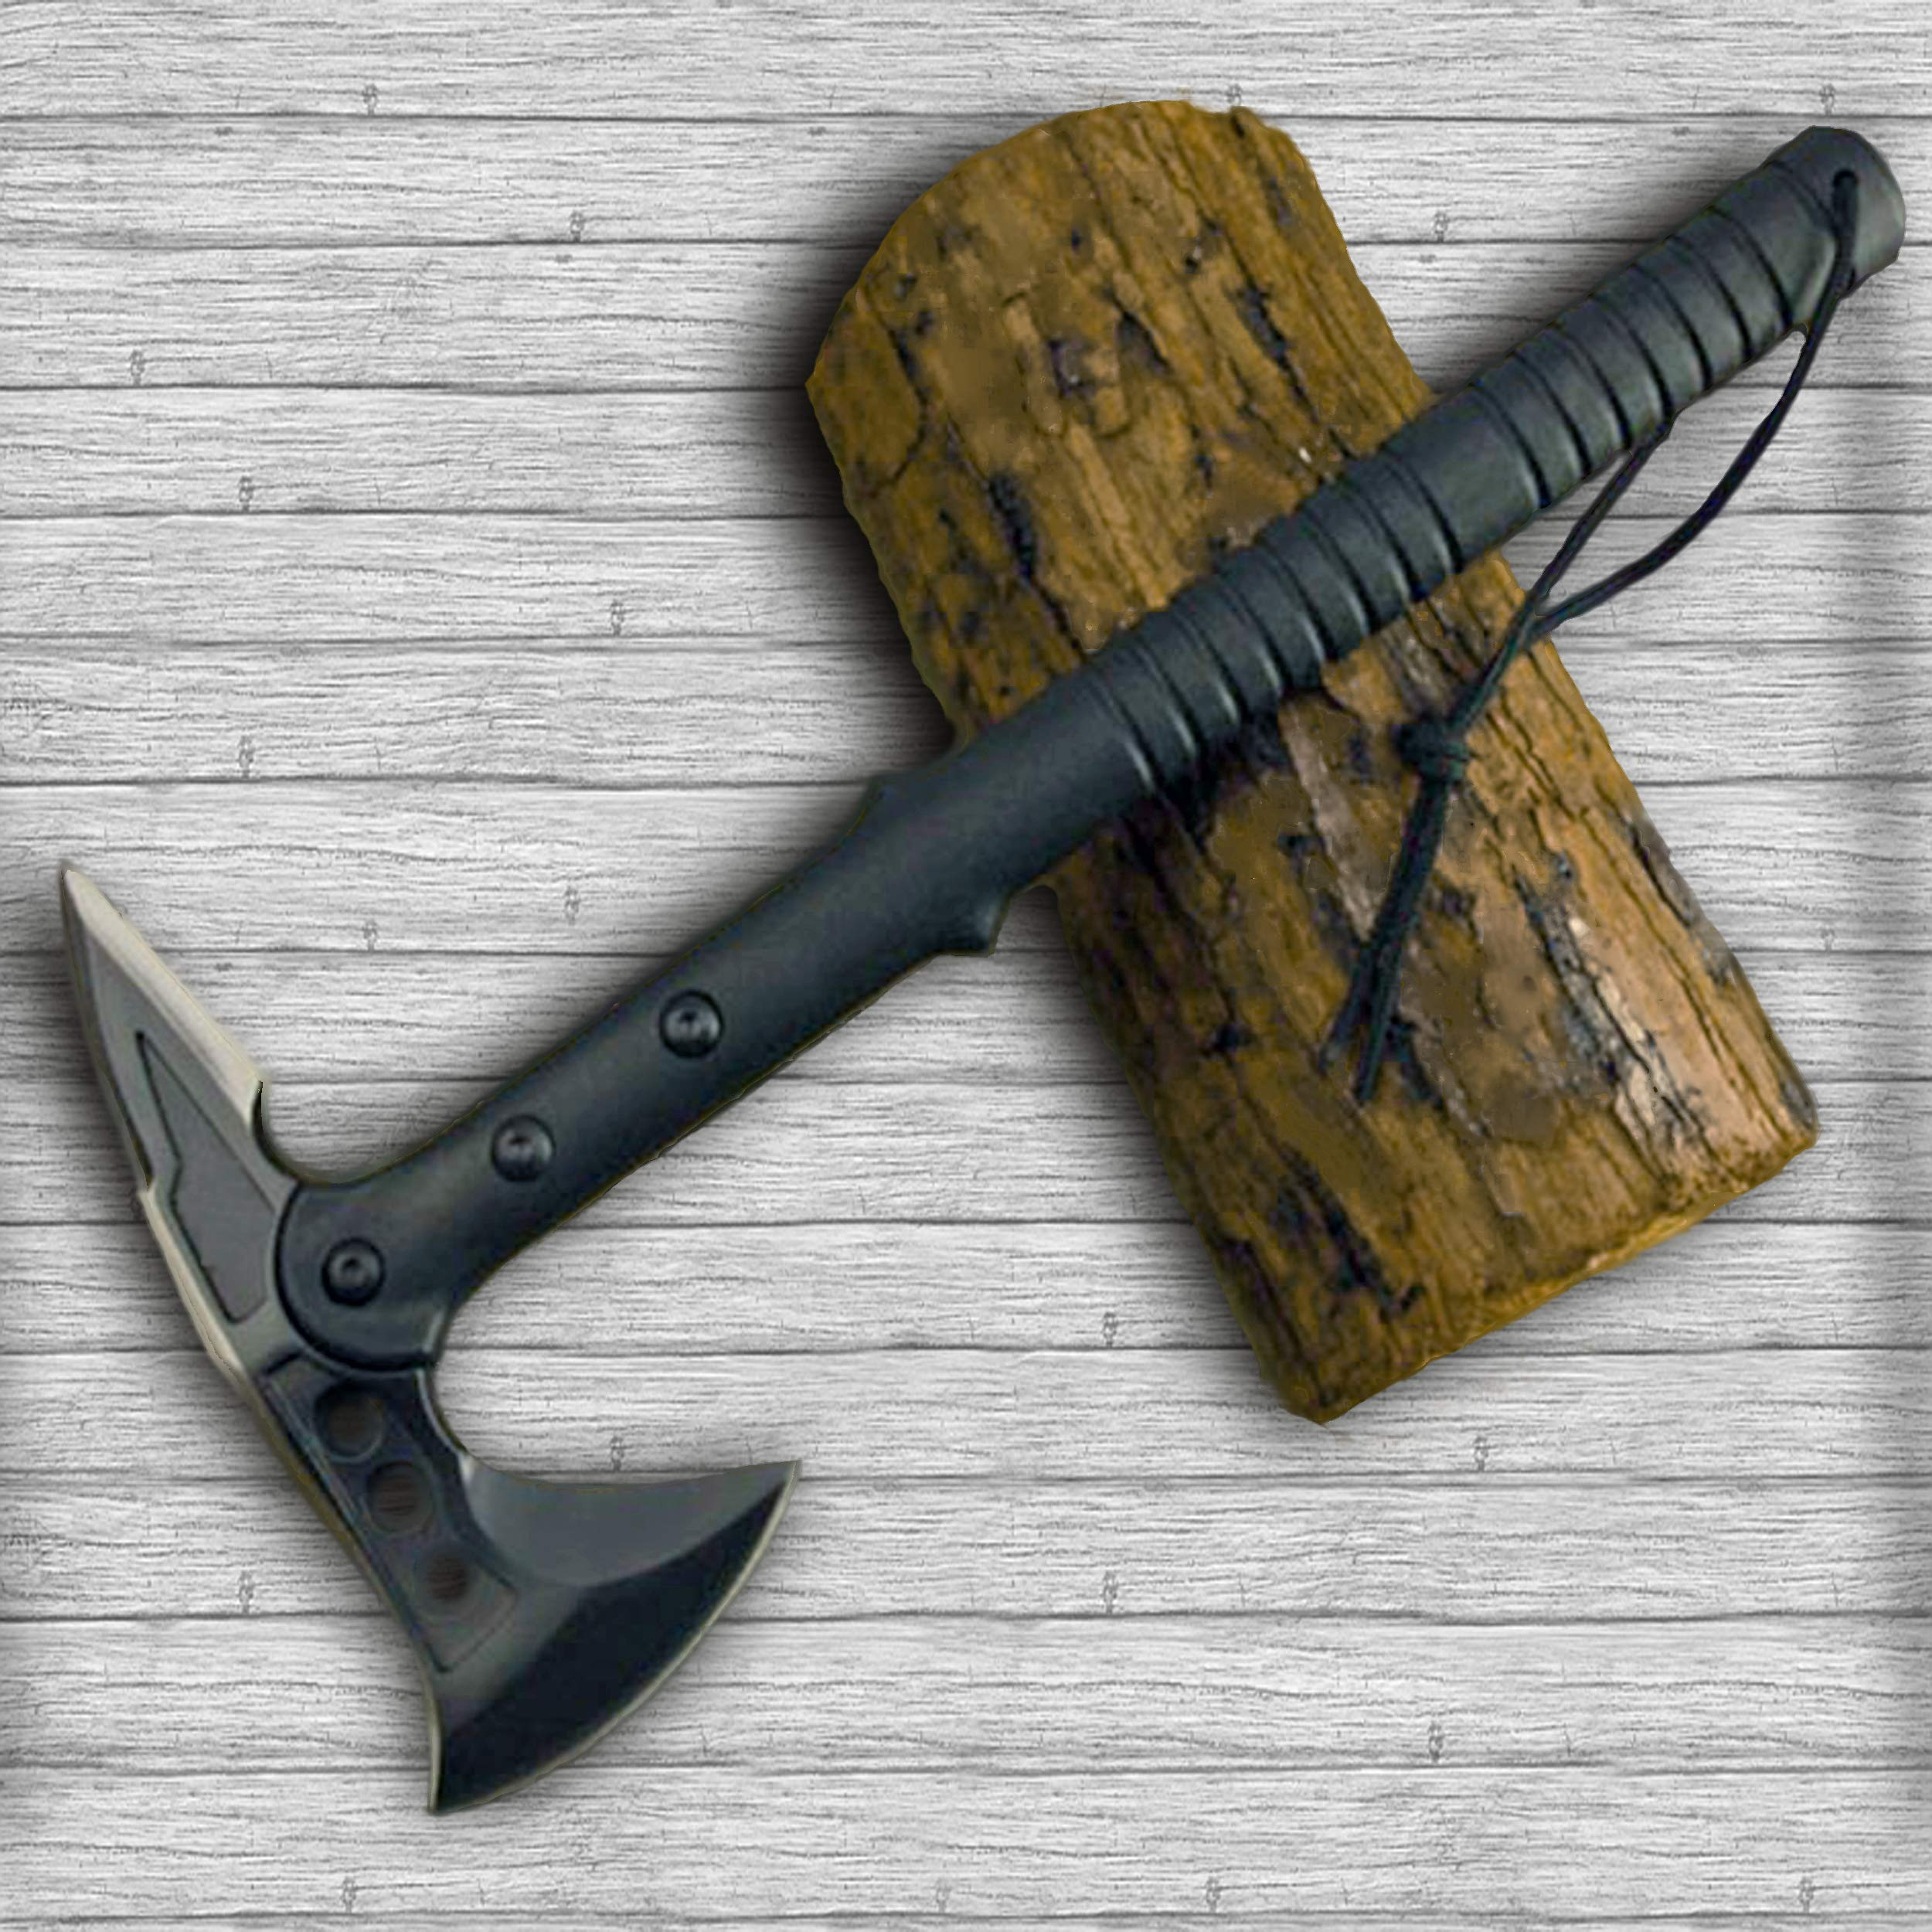 TS09 Tomahawk Axe, Professional Survival and Camping Chopper with Leather Sheath, SS420HC Blade, Glass Fiber Handle